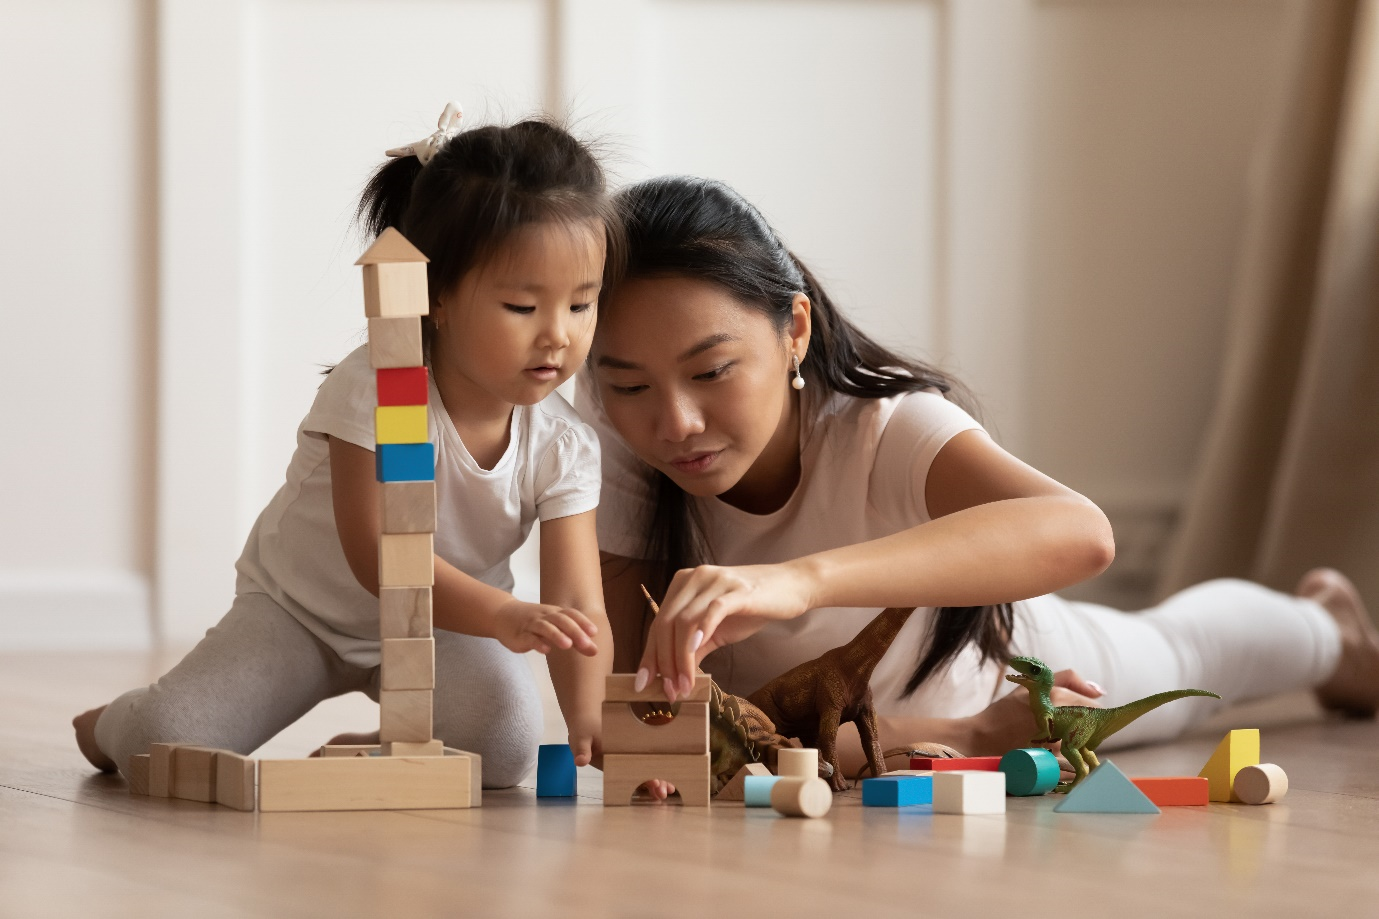 Mum and little girl sitting on floor together stacking blocks